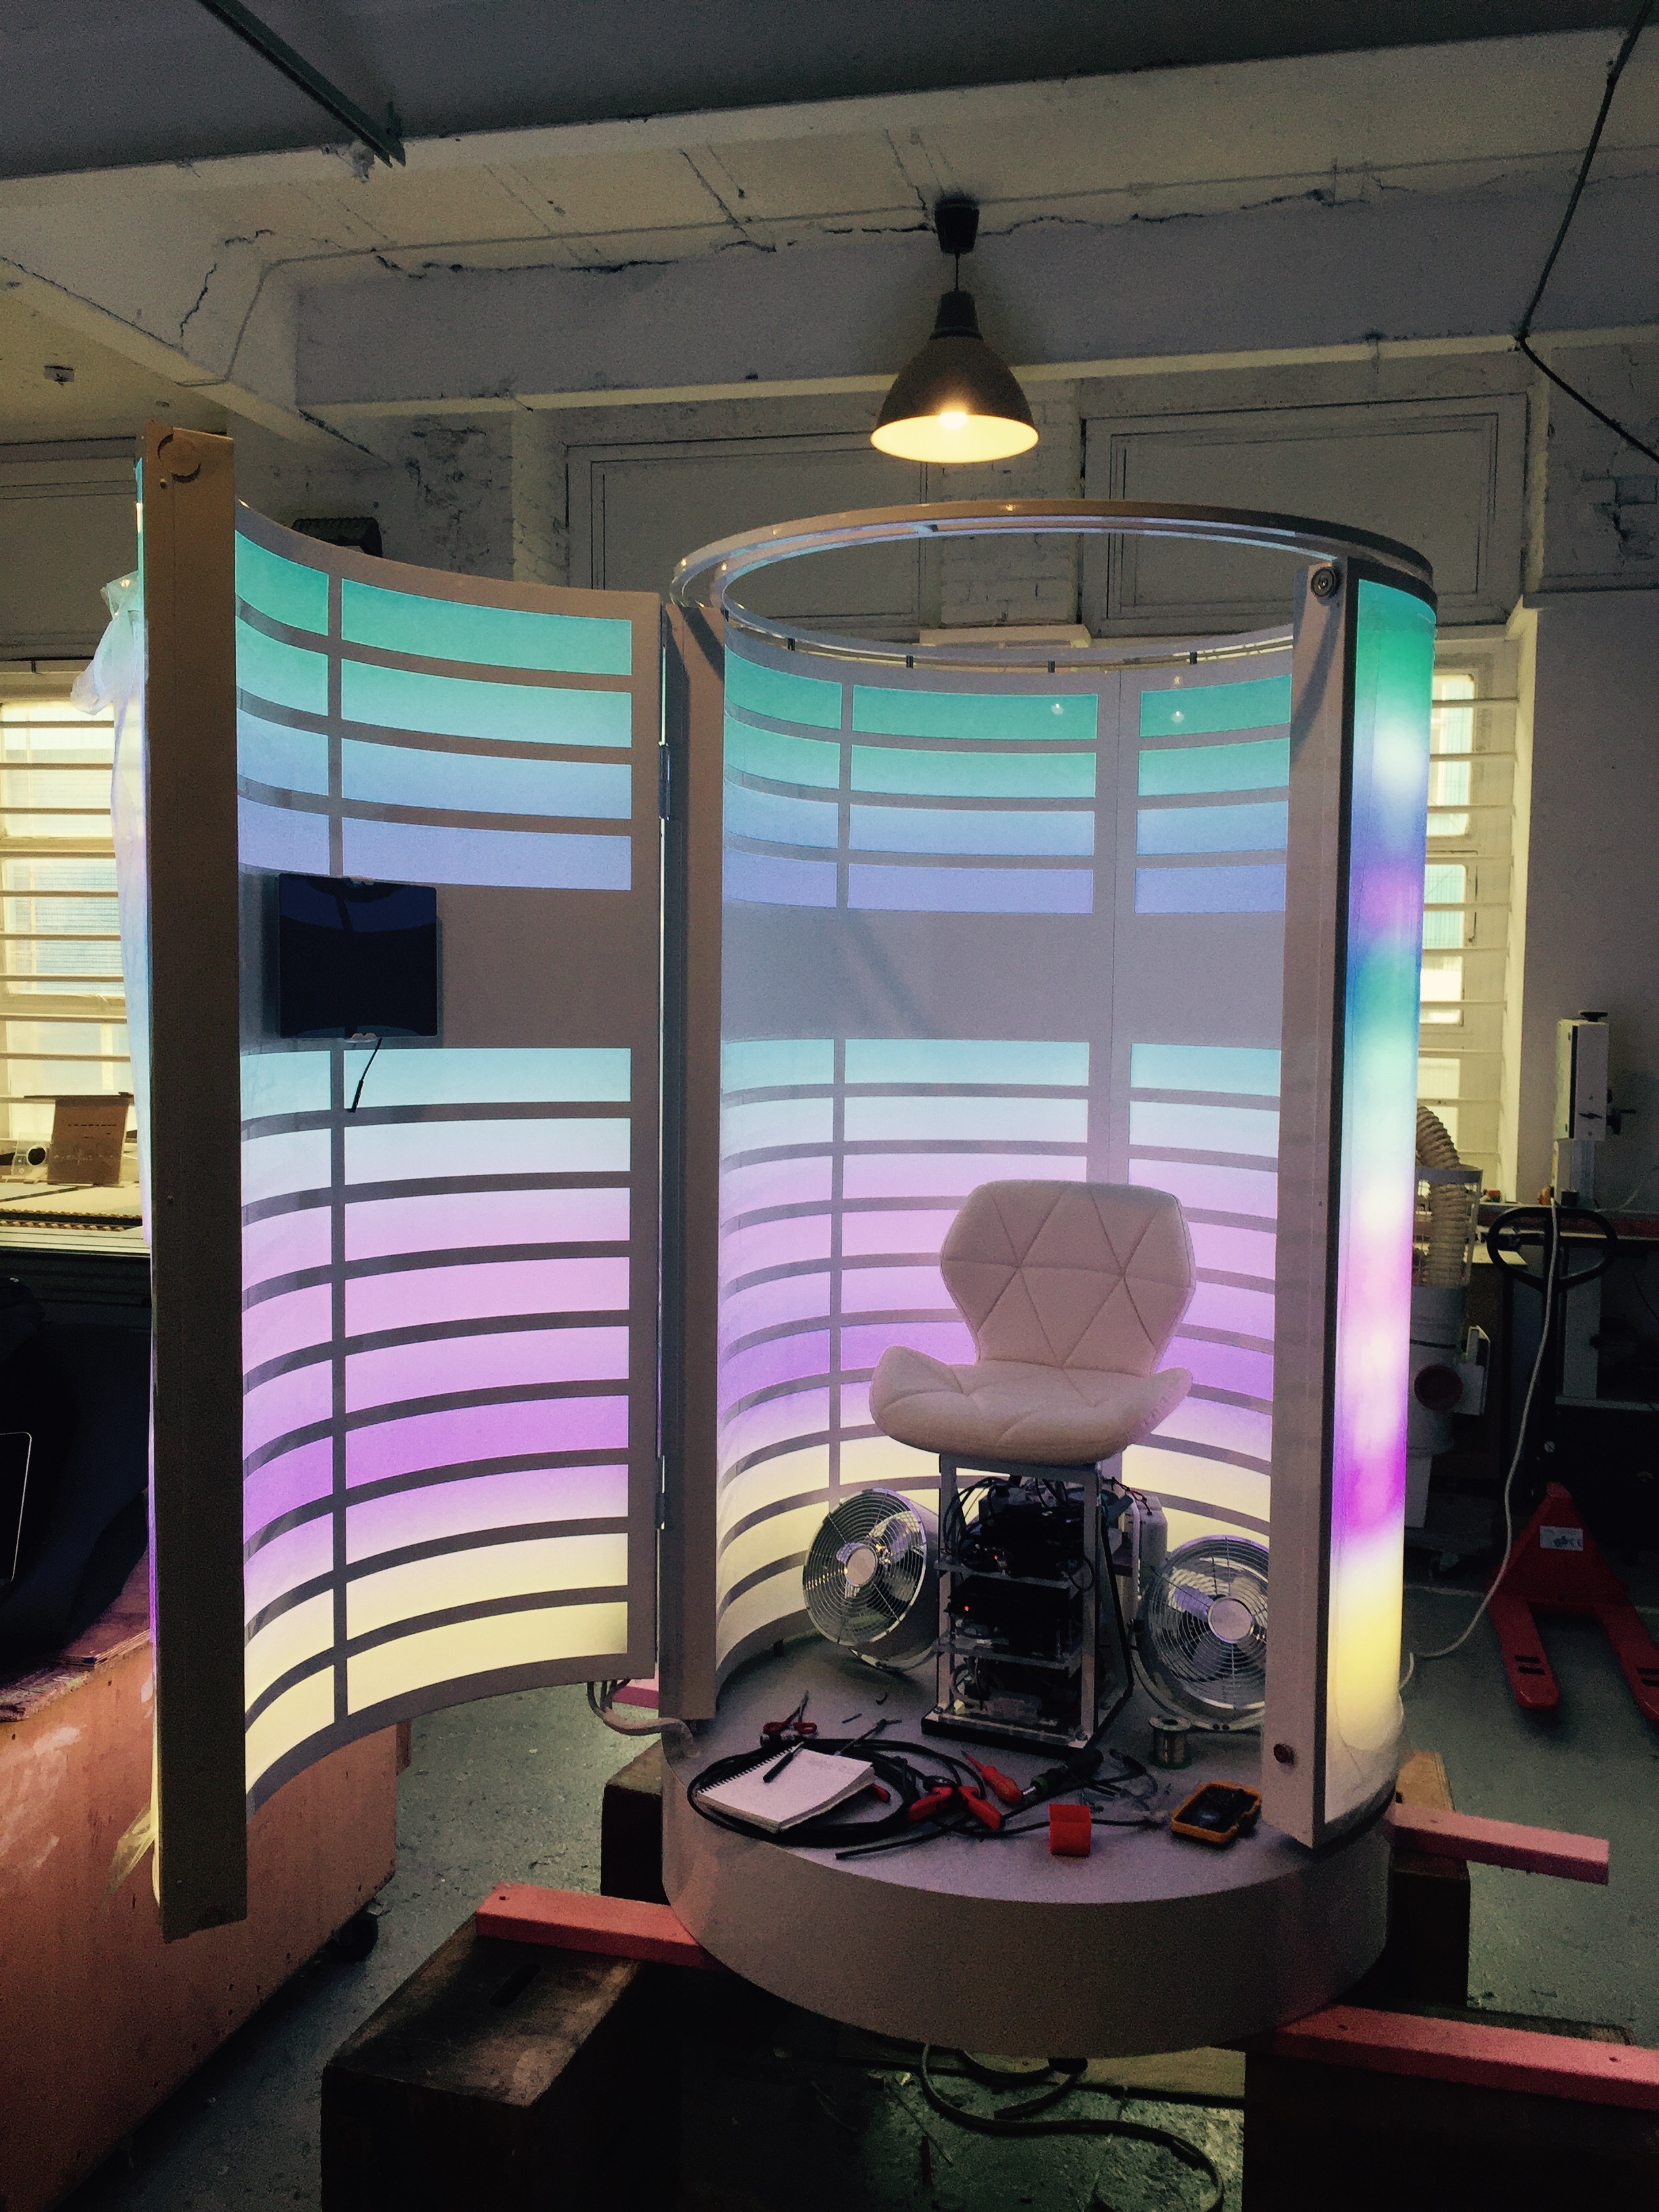 Immersive sounds, aromas and movements booth